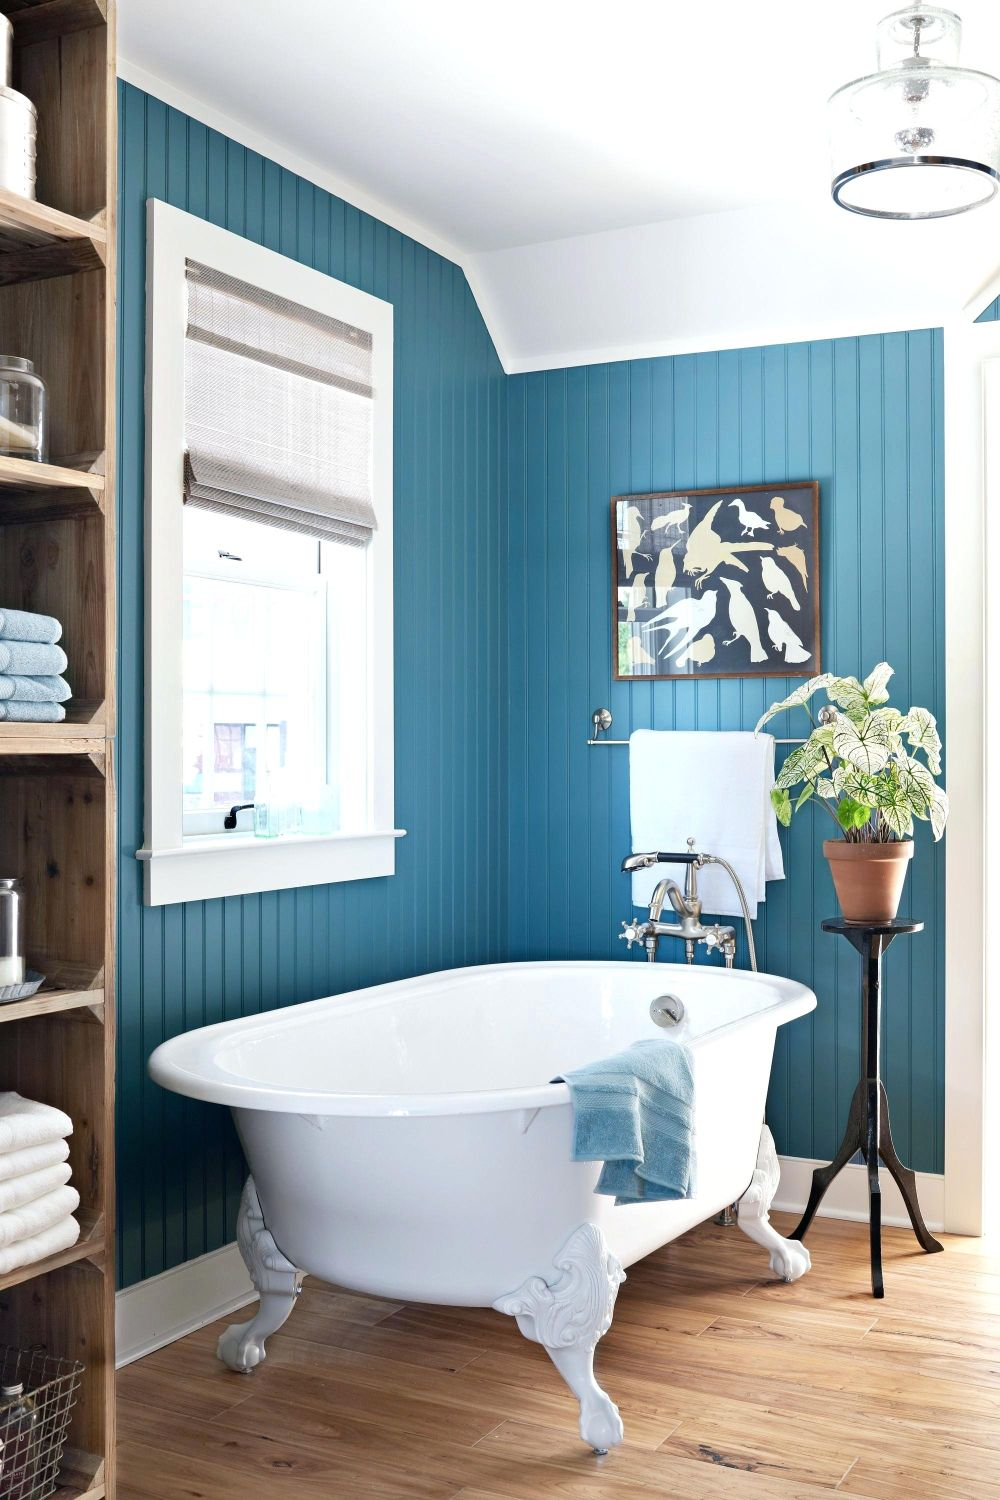 1572969148 248 20 beautiful blue rooms ideas to decorate with blue - 20 Beautiful Blue Rooms – Ideas To Decorate With Blue